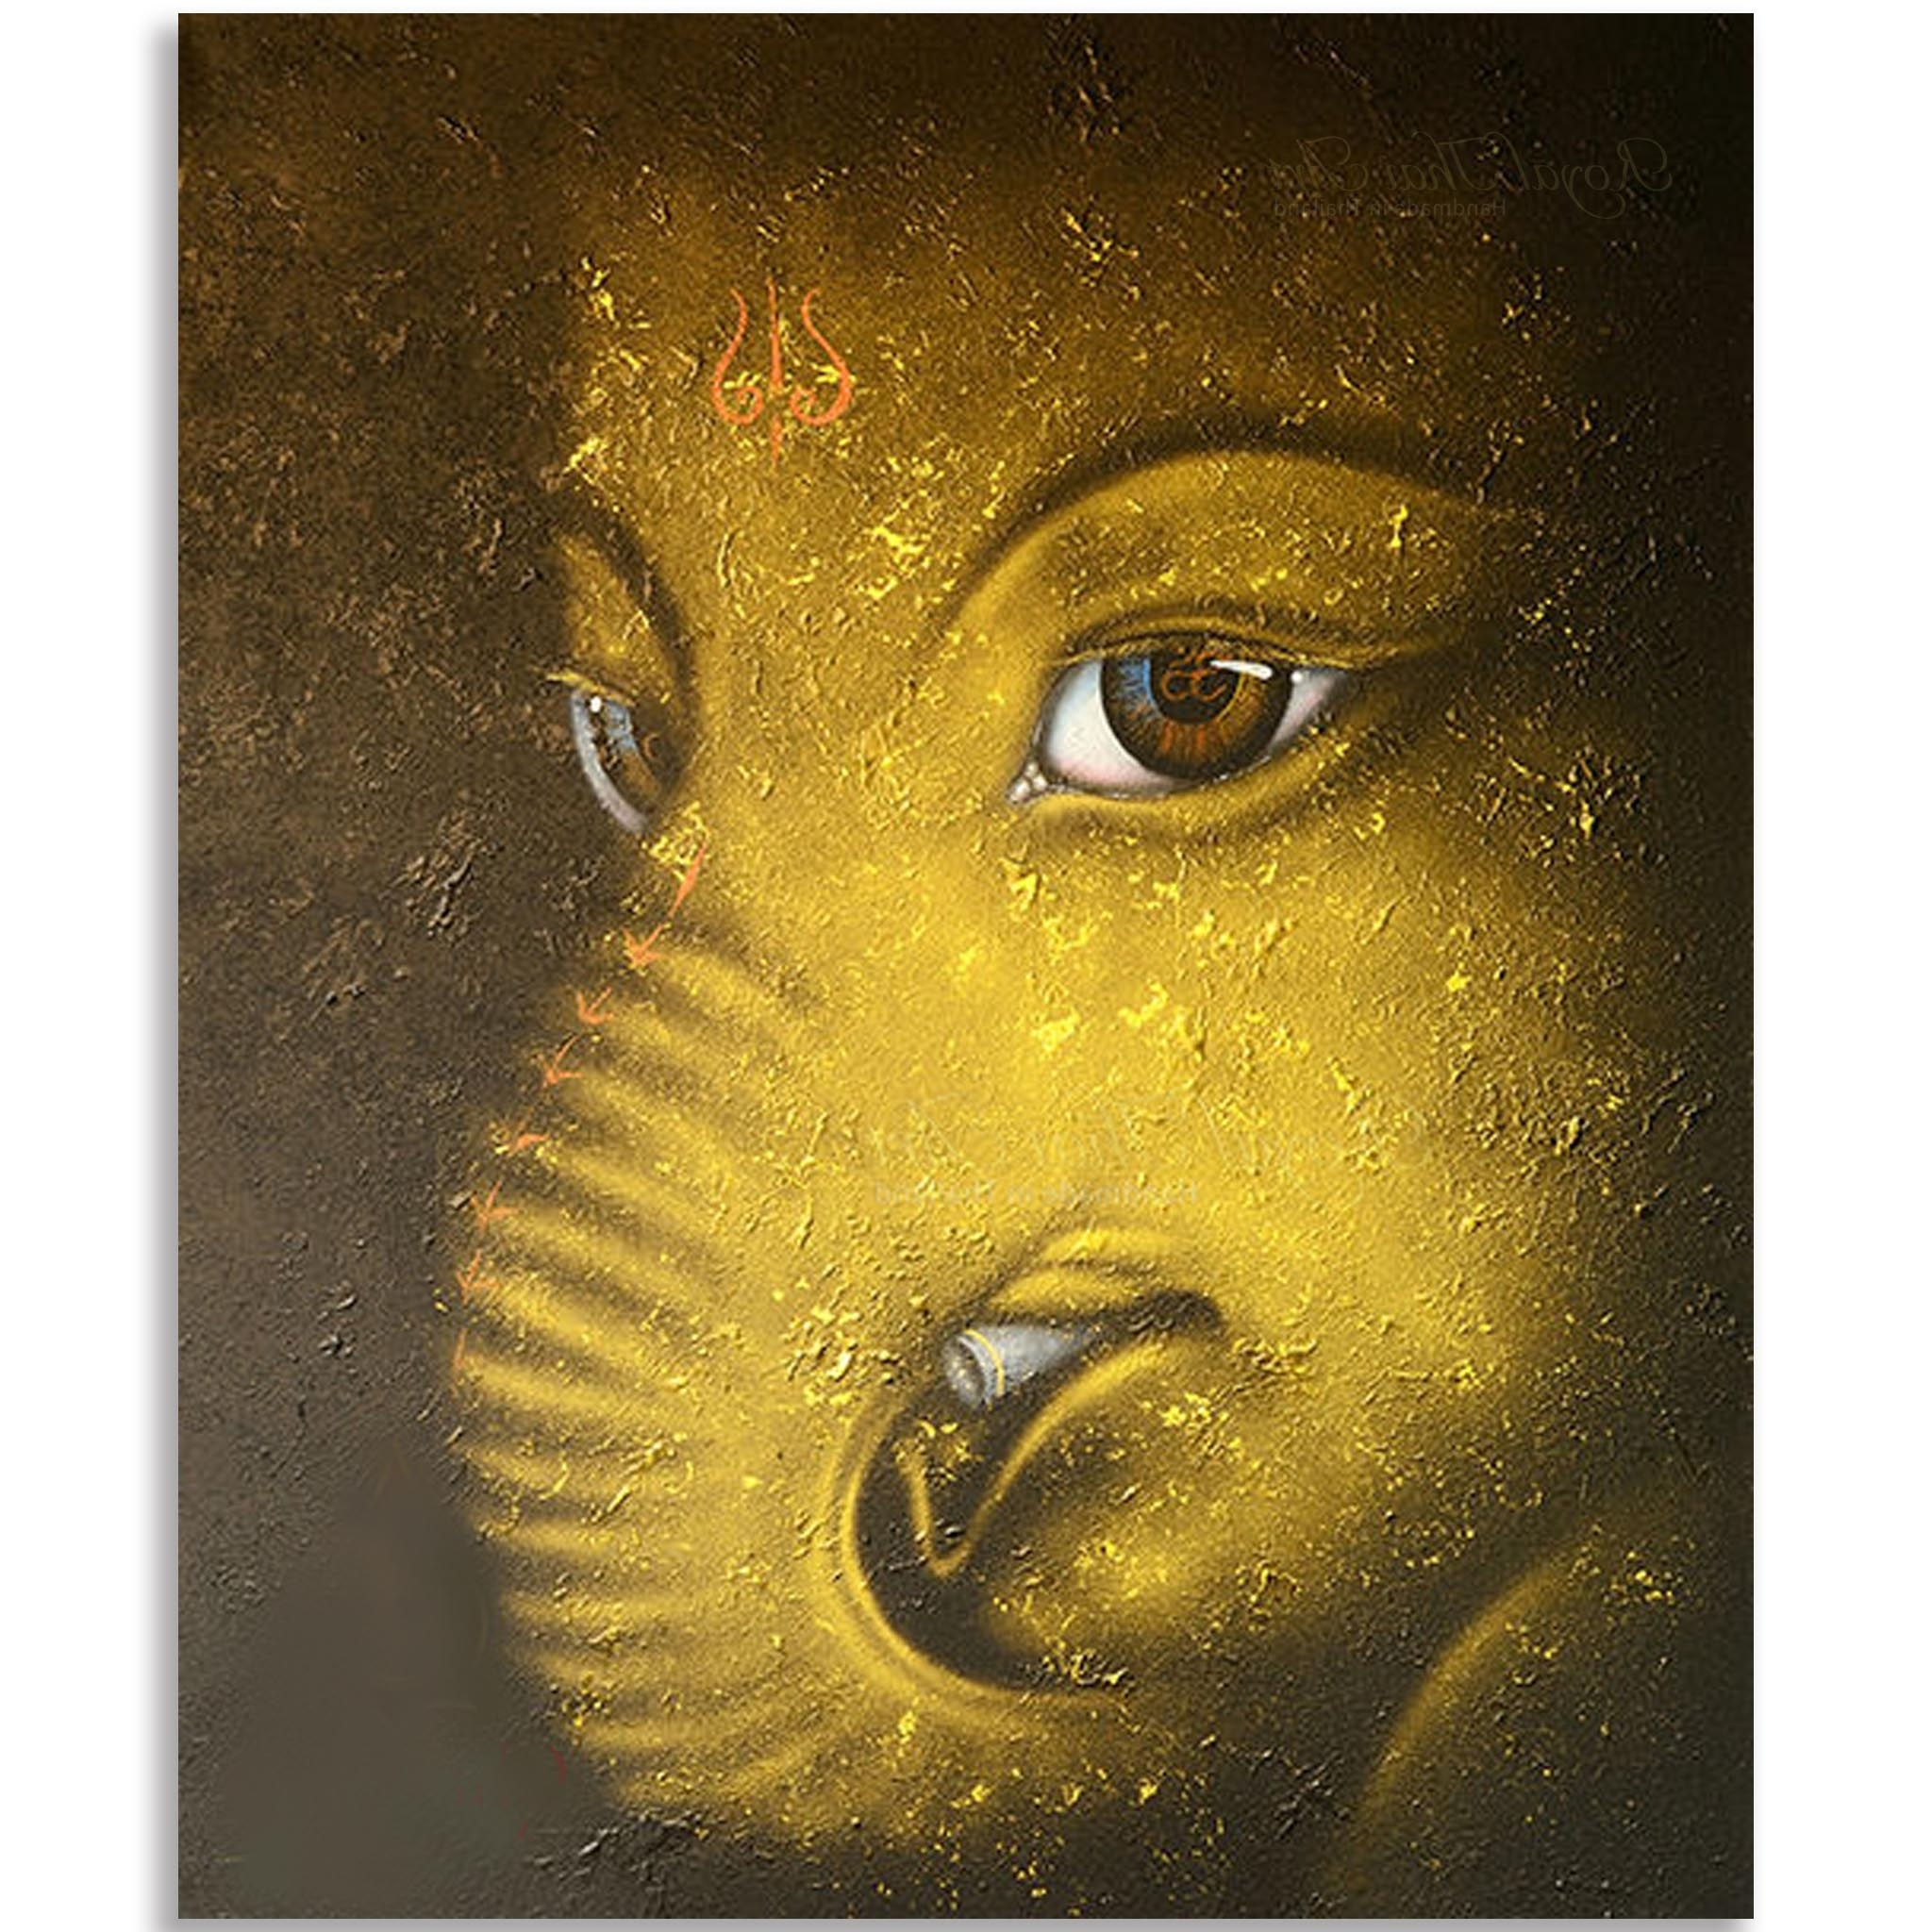 Abstract Ganesha Wall Art Pertaining To Favorite Contemporary Ganesha Painting L Acrylic Gold Leaf On Canvas Thai Art (View 3 of 15)